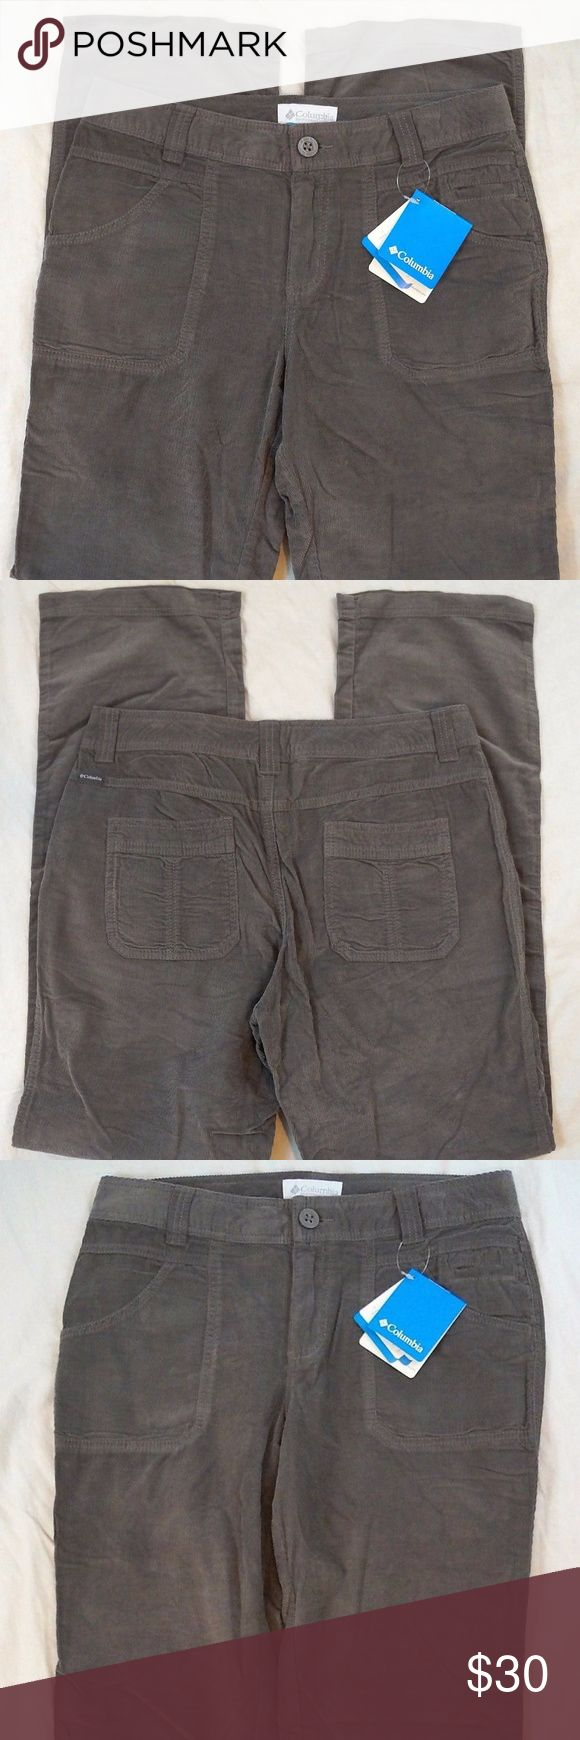 "Columbia Sportswear Vapor Trail Gray Corduroy Pant Columbia Sportswear Vapor Trail Gray Corduroy Womens Pants Size 10R NWT   Hand Measurements: Waist: 32"" Inseam: 32"" Rise: 9.5"" Hips: 38"" Leg Opening: 8.5""  #119 Columbia Pants Boot Cut & Flare"